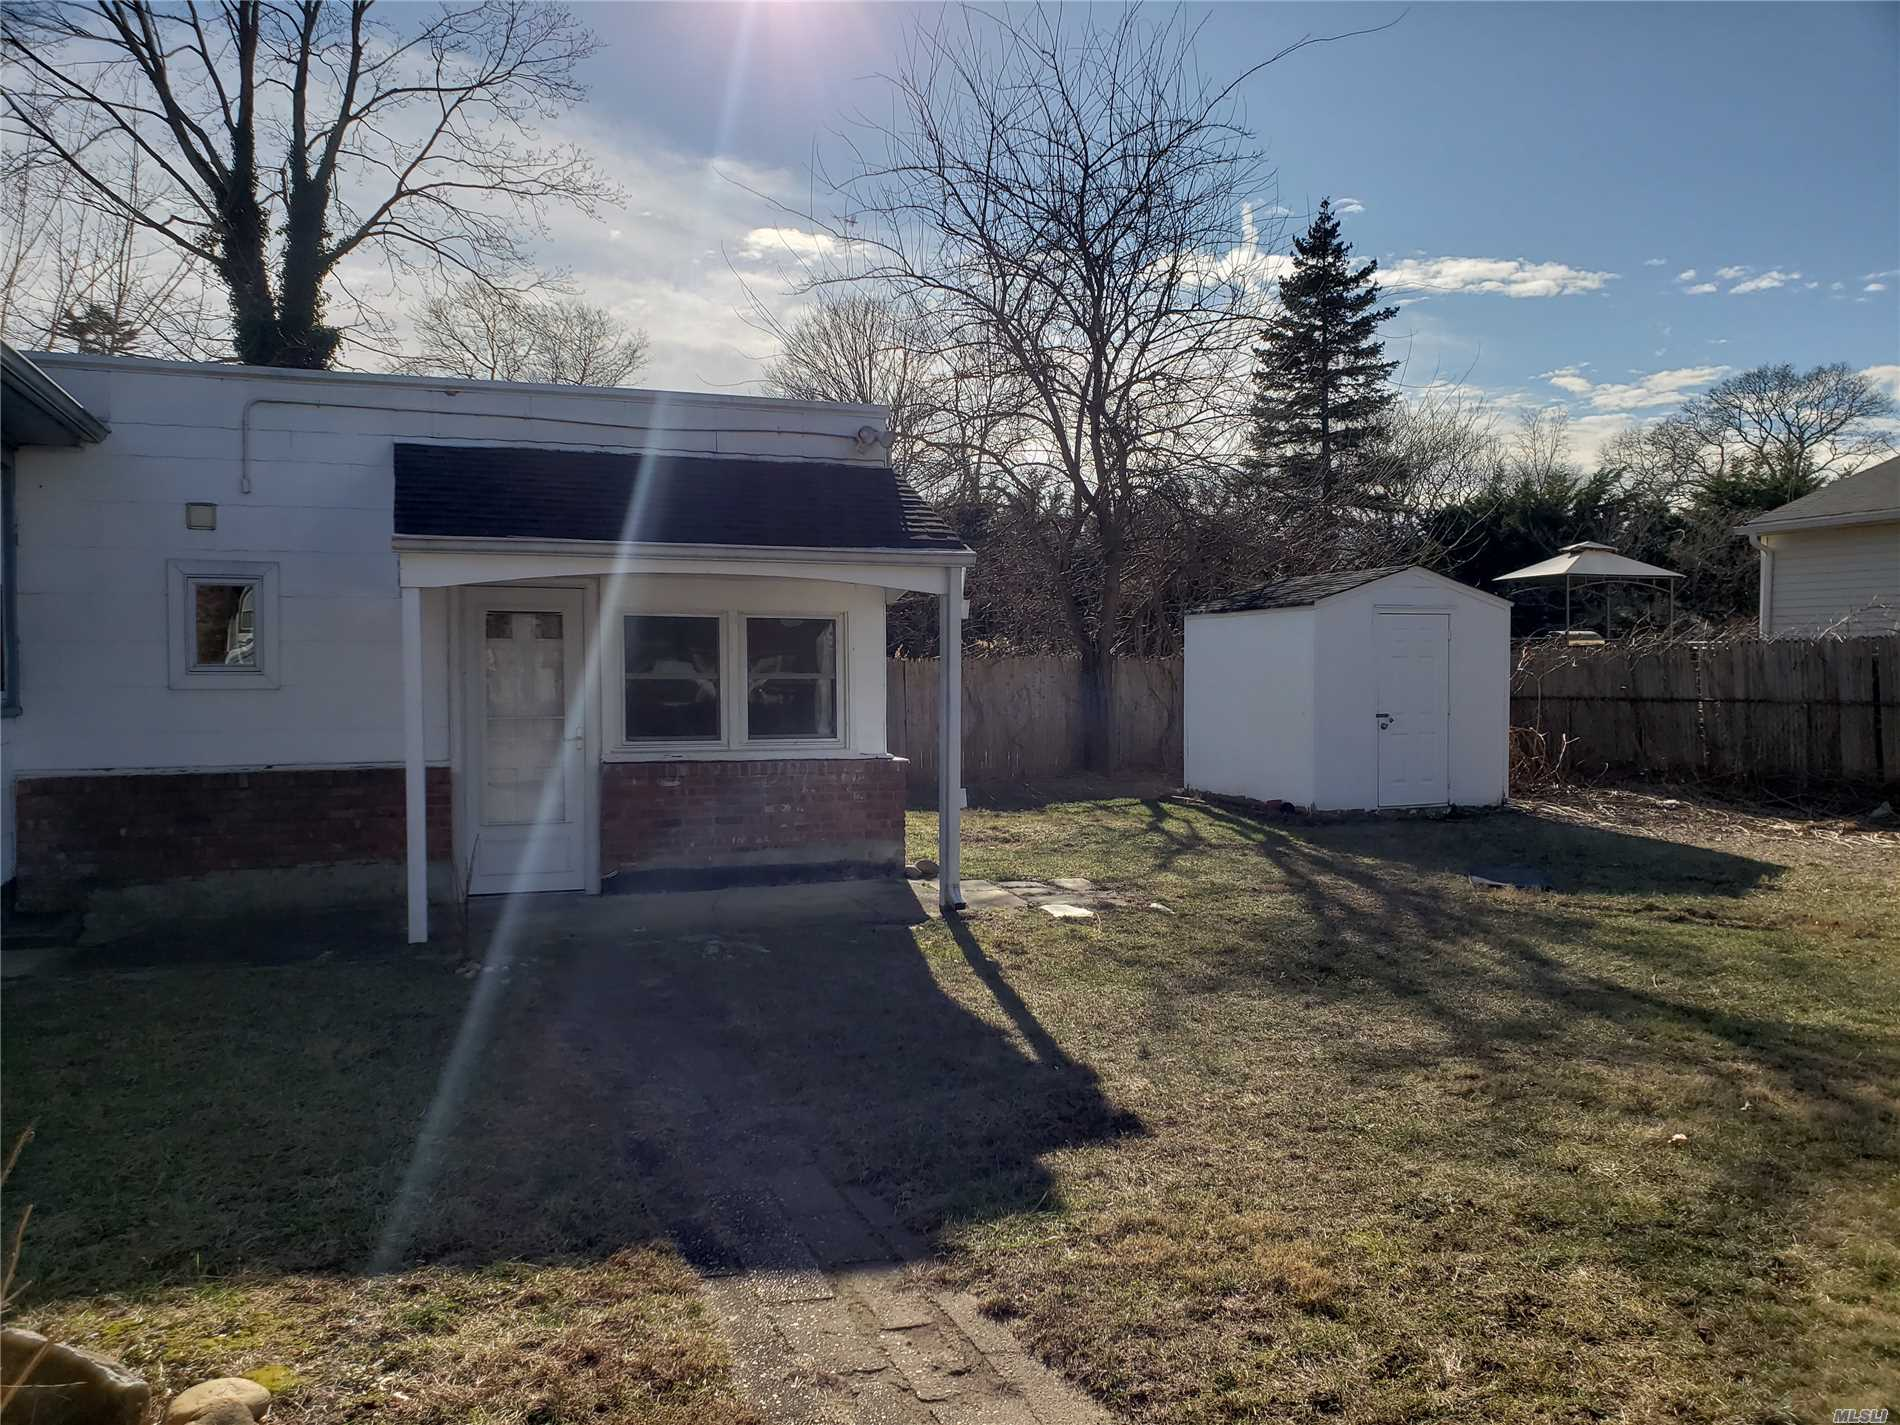 Landlord Pays For Water And Landscaping. Tenant Pays Electric And Gas. Tenant Takes Care Of Snow Removal.Cats Are Allowed. There Is A Deposit Of Cats. There Is A Driveway For Parking. 2 Bedrooms, Full Bath, Eat In Kitchen Wiith A Living Room.